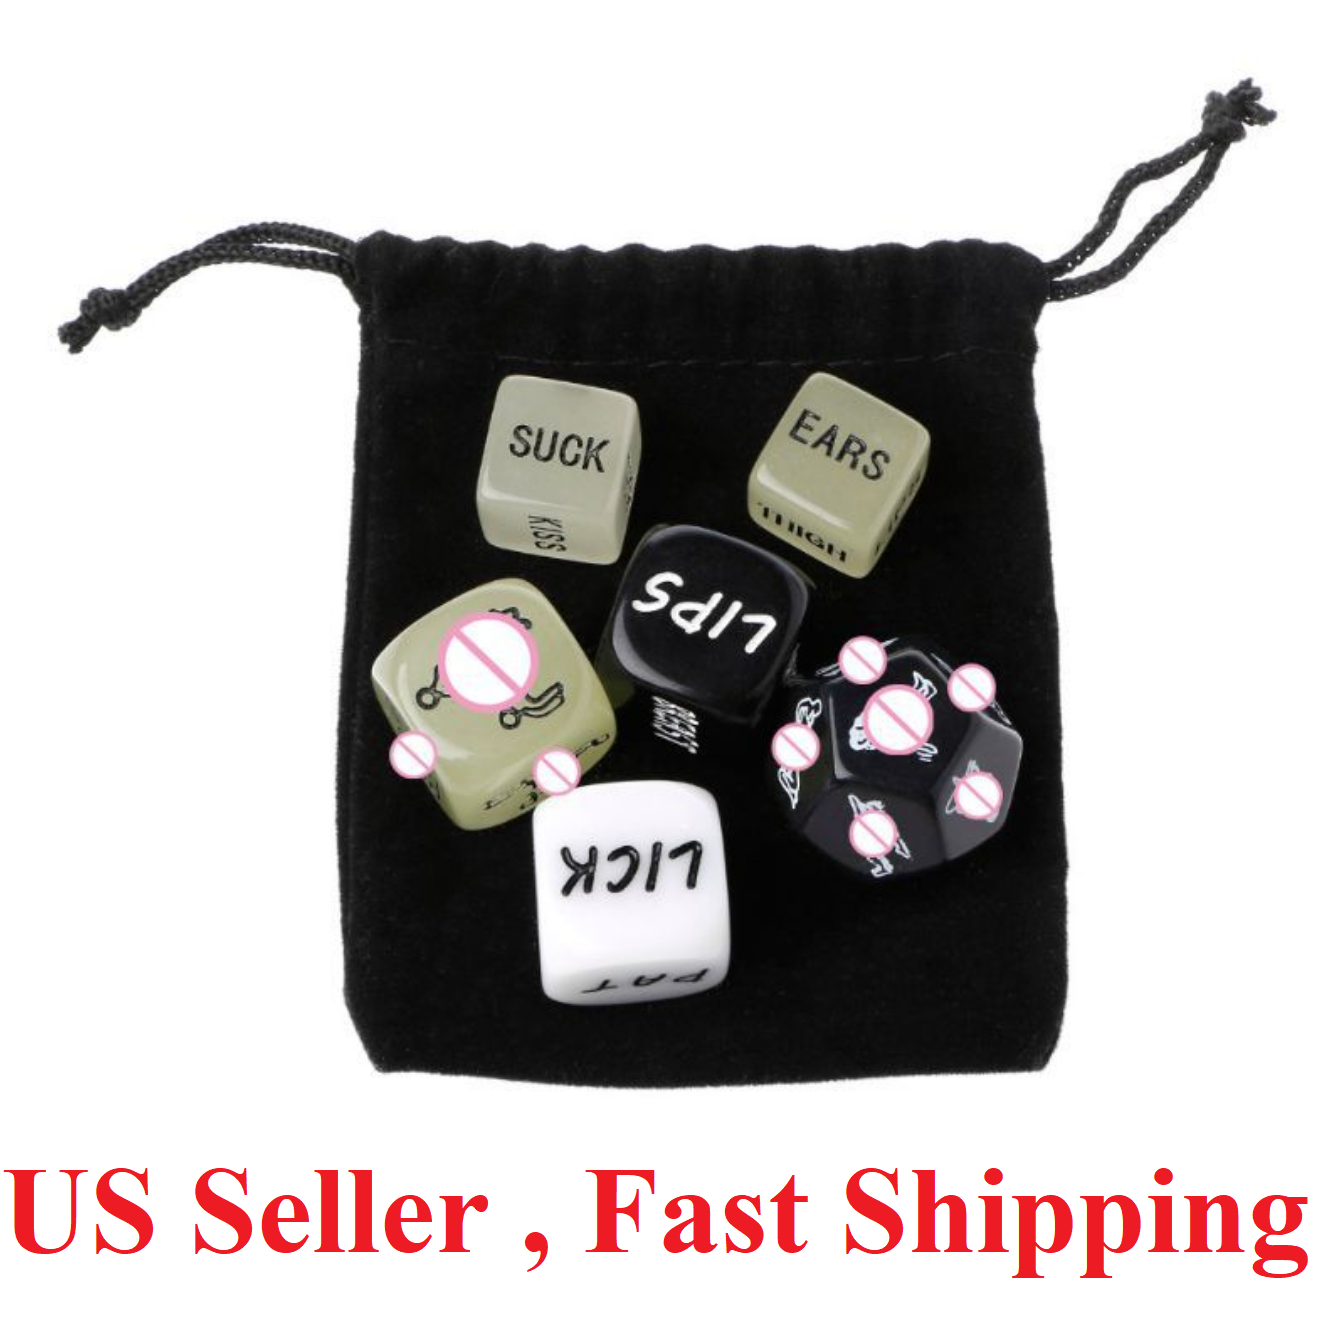 6X Adult Love Dice Sexy Position Funny Game Foreplay Toy Set Lover Bachelor NEW Games